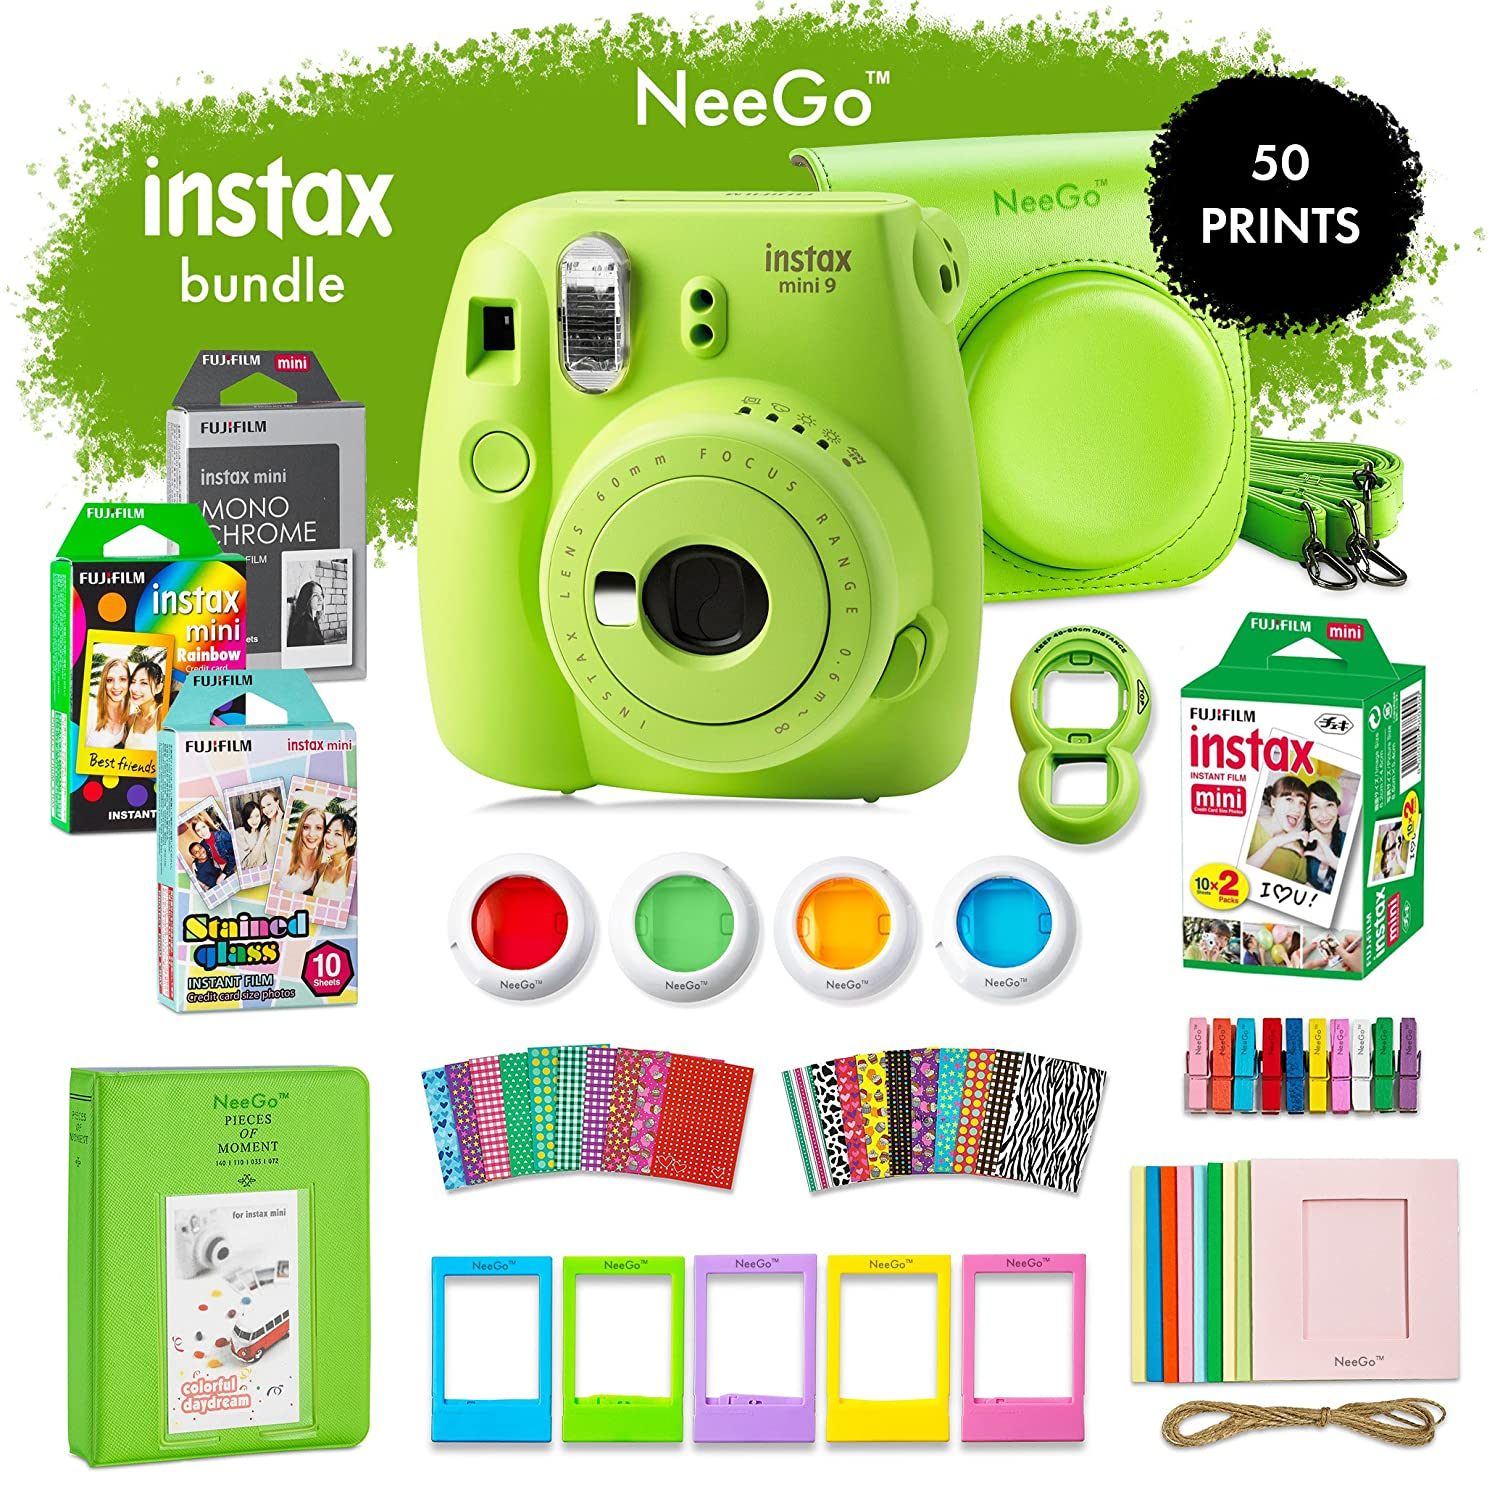 NeeGo Instax Mini 9 Instant Camera Bundle– Deluxe Kit With Camera, Matching Case & 4 Fun Film Packs– Rainbow, Stained Glass, Monochrome & White 50 Exposures For Instant Creative Photos (Ice)